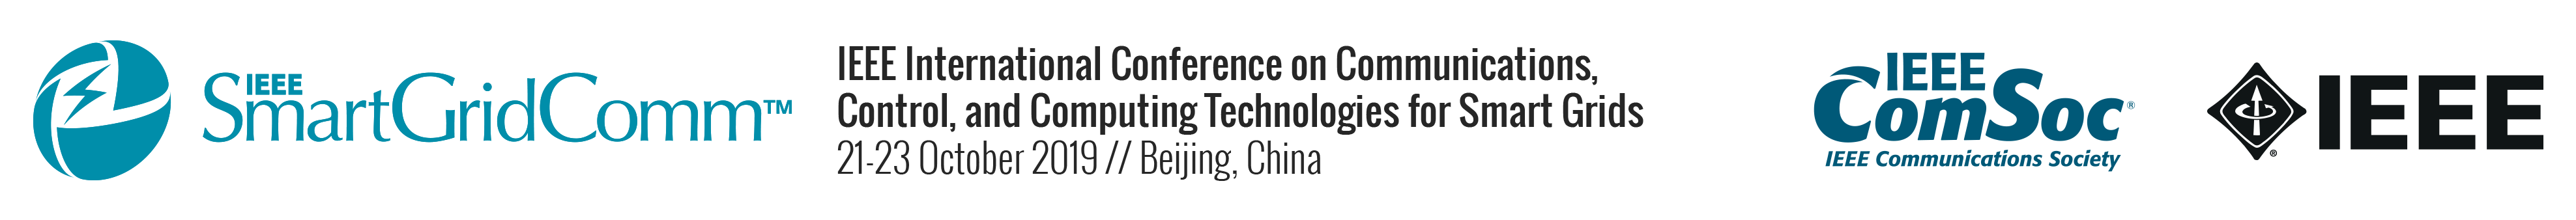 2019 IEEE International Conference on Communications, Control, and Computing Technologies for Smart Grids (SmartGridComm)